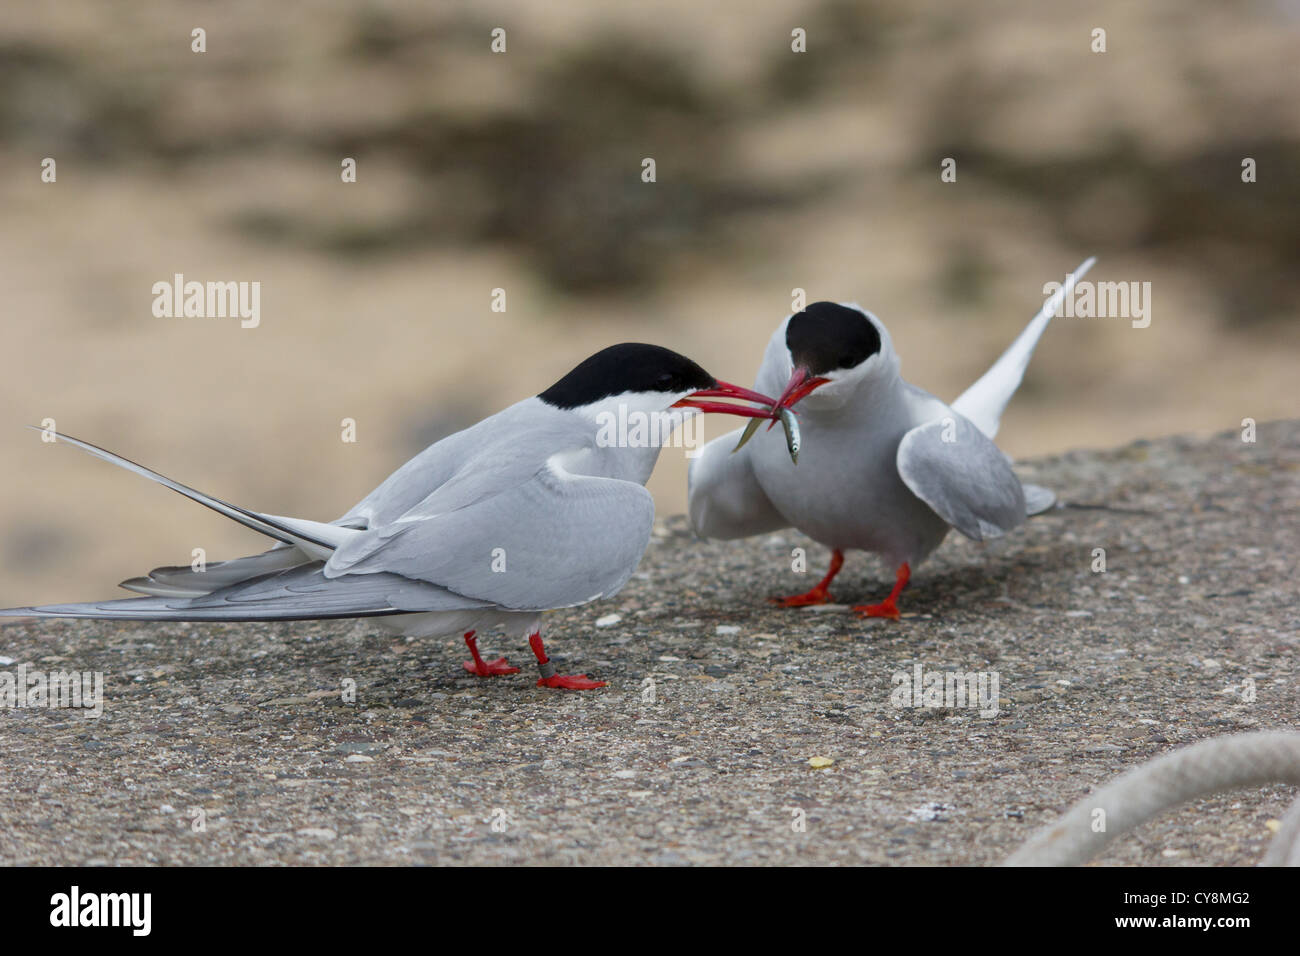 gmlh1207_4216 sterna paradisaea Arctic terns share a sand eel on the Farne Islands off Seahouse Northumberland United - Stock Image